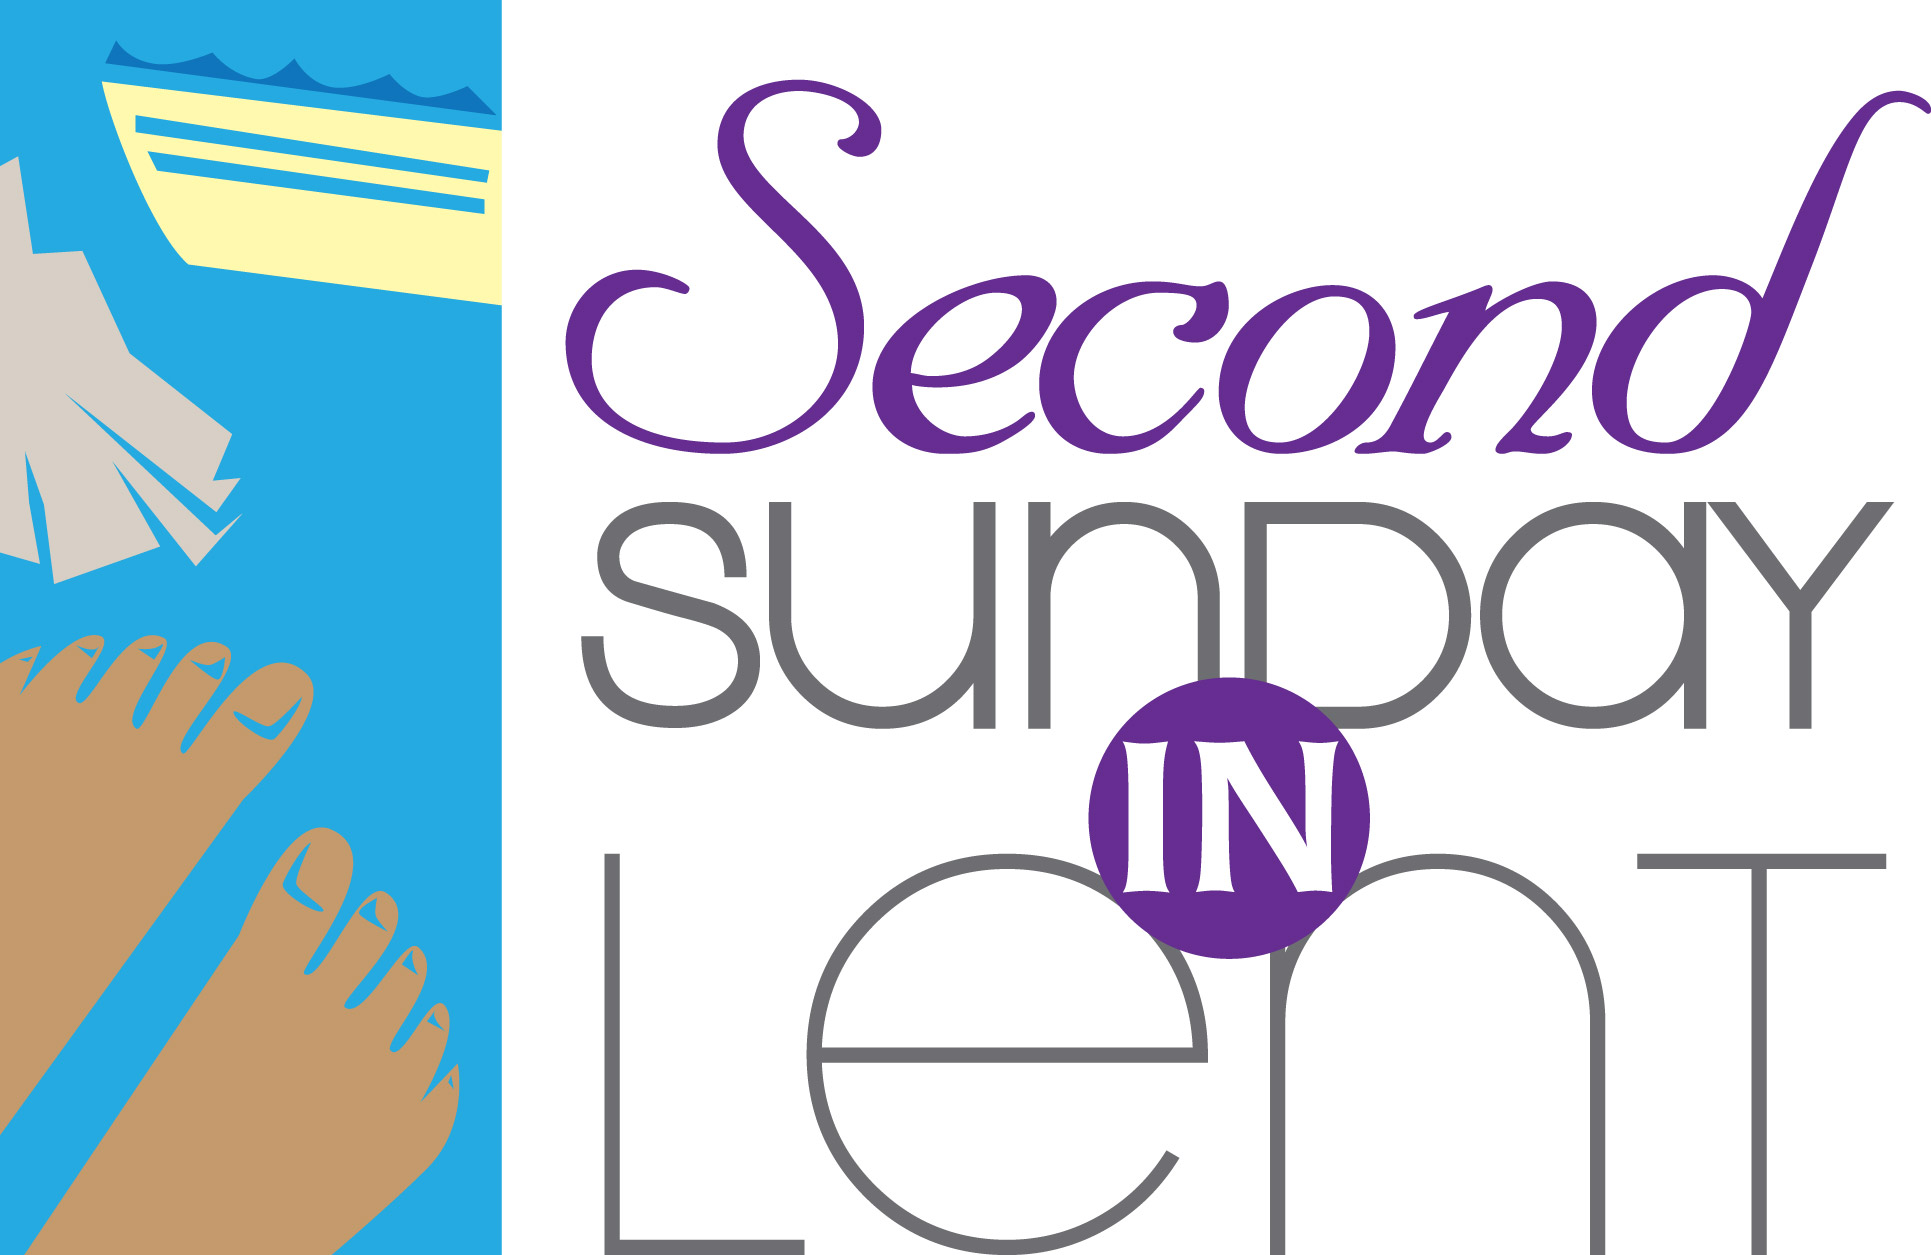 2nd Week Of Lent Clipart - Clipart Kid